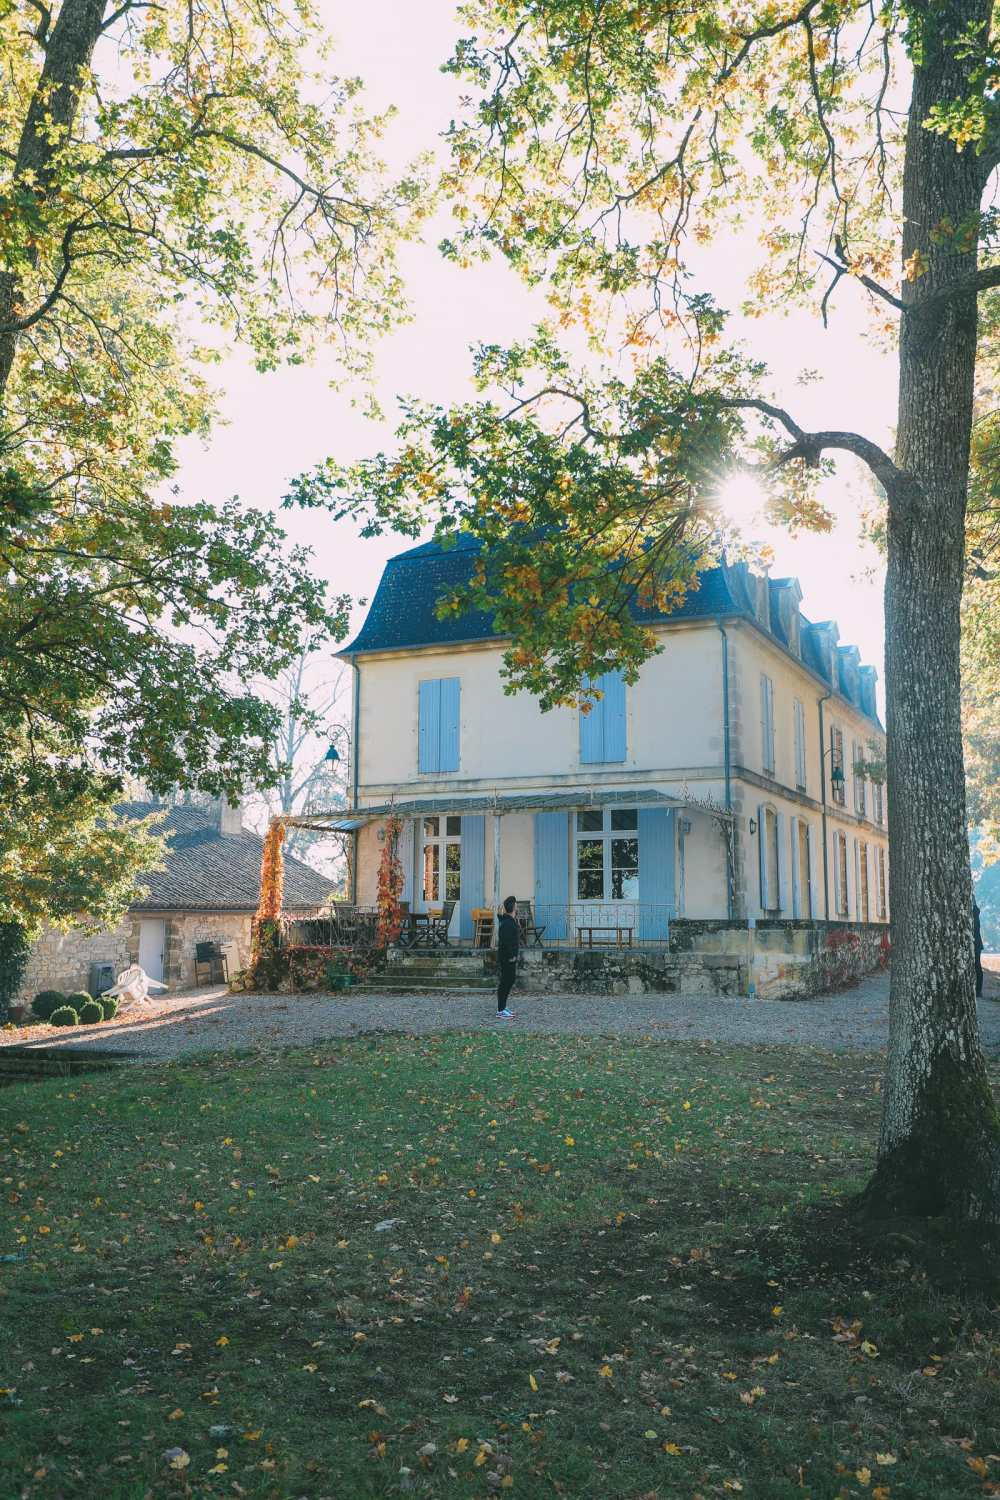 French Wine, French Castles And Delicious French Food - A Trip To French Wine Country (29)